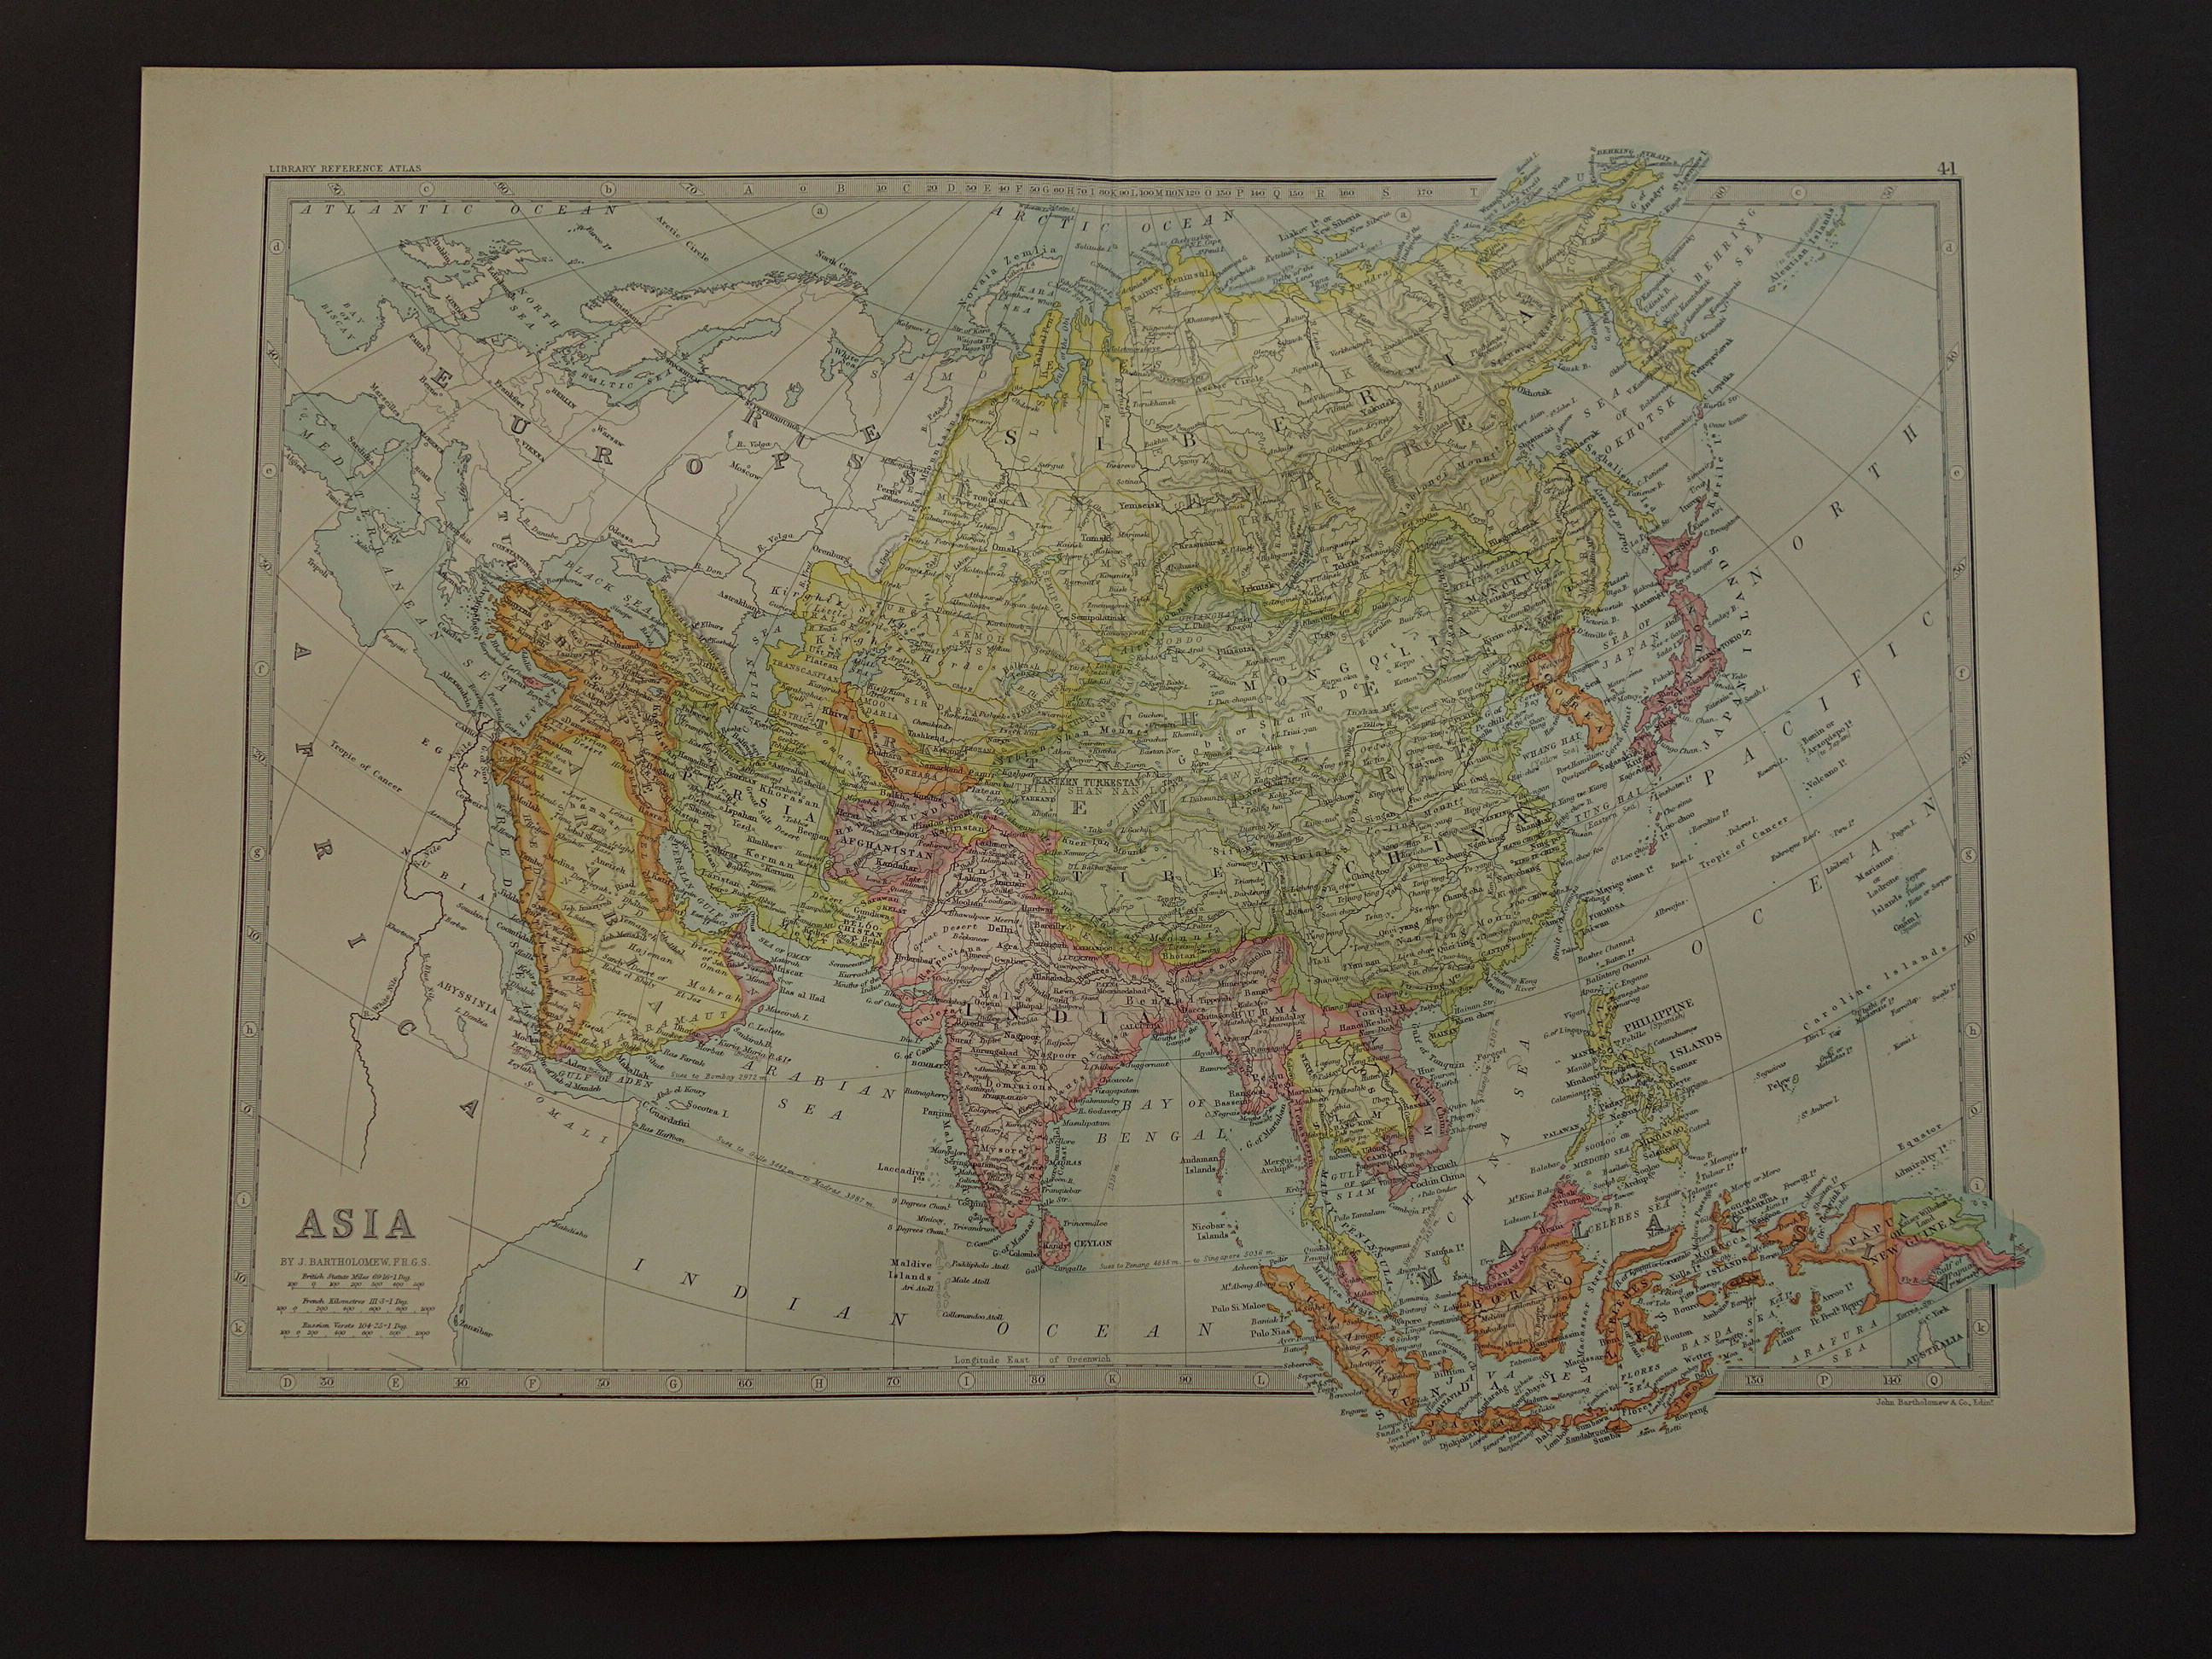 Asia old map of asia large 1890 original antique english print of asia old map of asia large 1890 original antique english print of asian continent vintage maps sciox Gallery